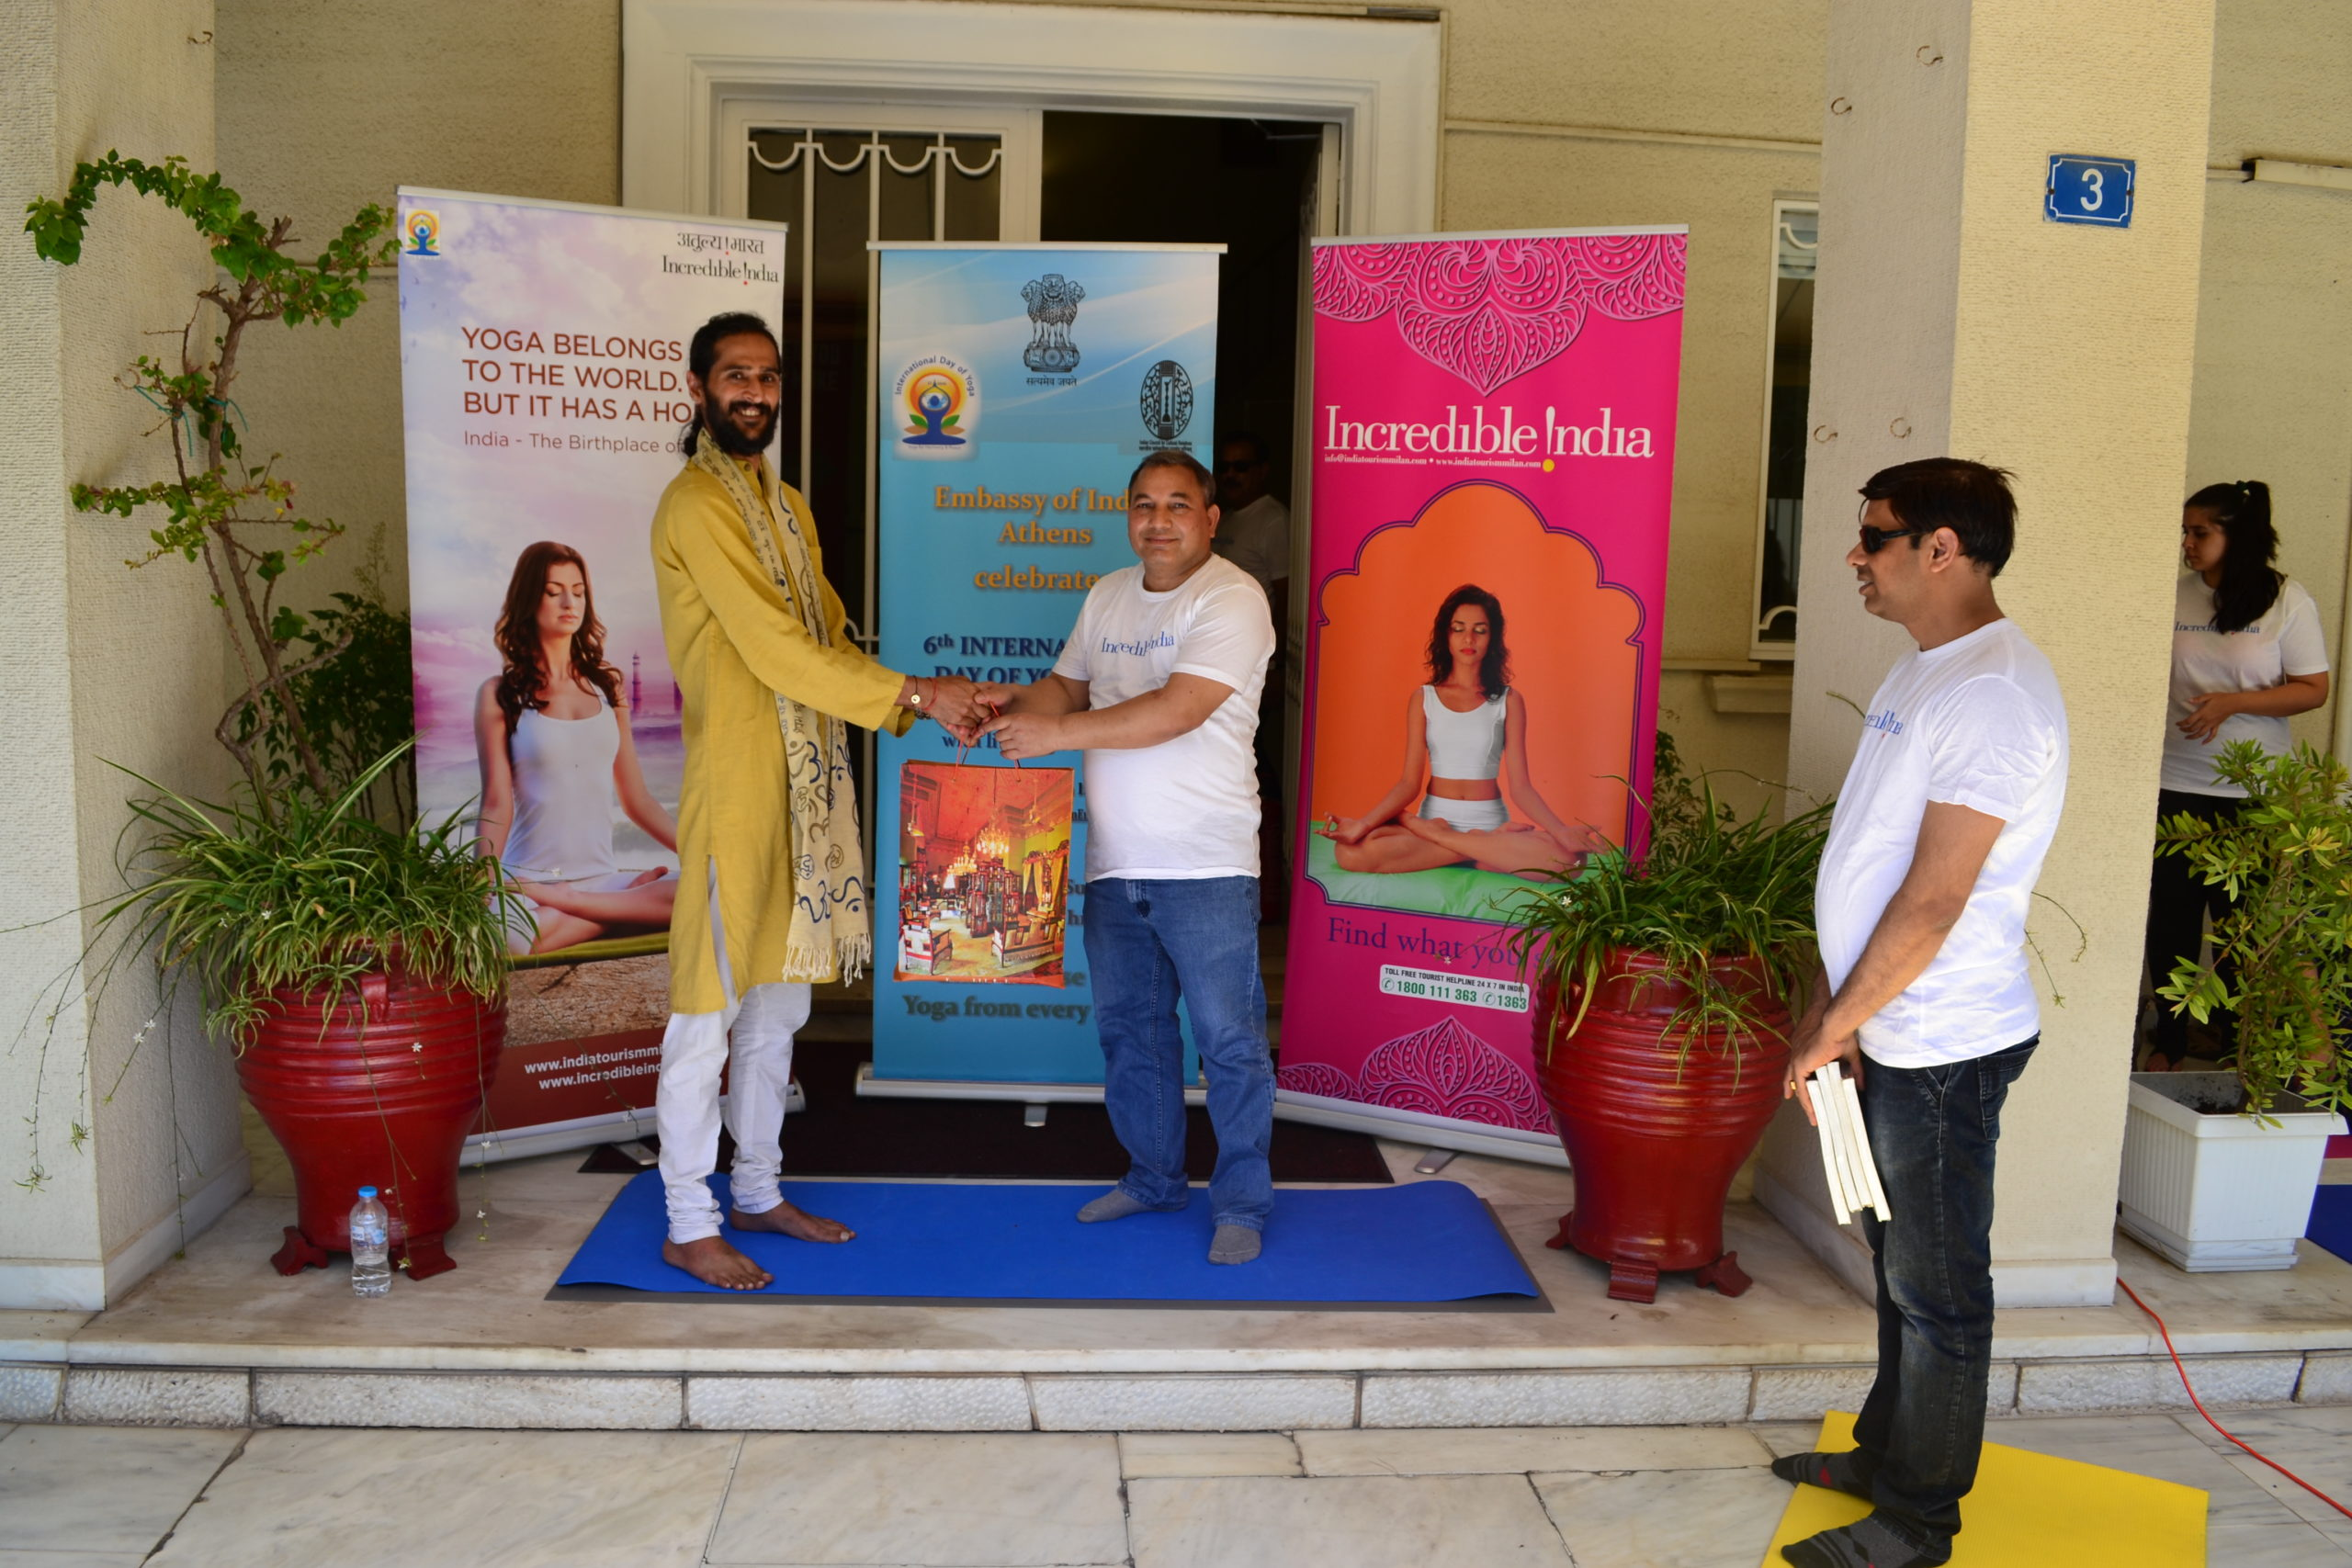 Being honoured by the ambassador of India to Greece after conducting the International Day of Yoga 2020 at the Indian Embassy in Athens, Greece.